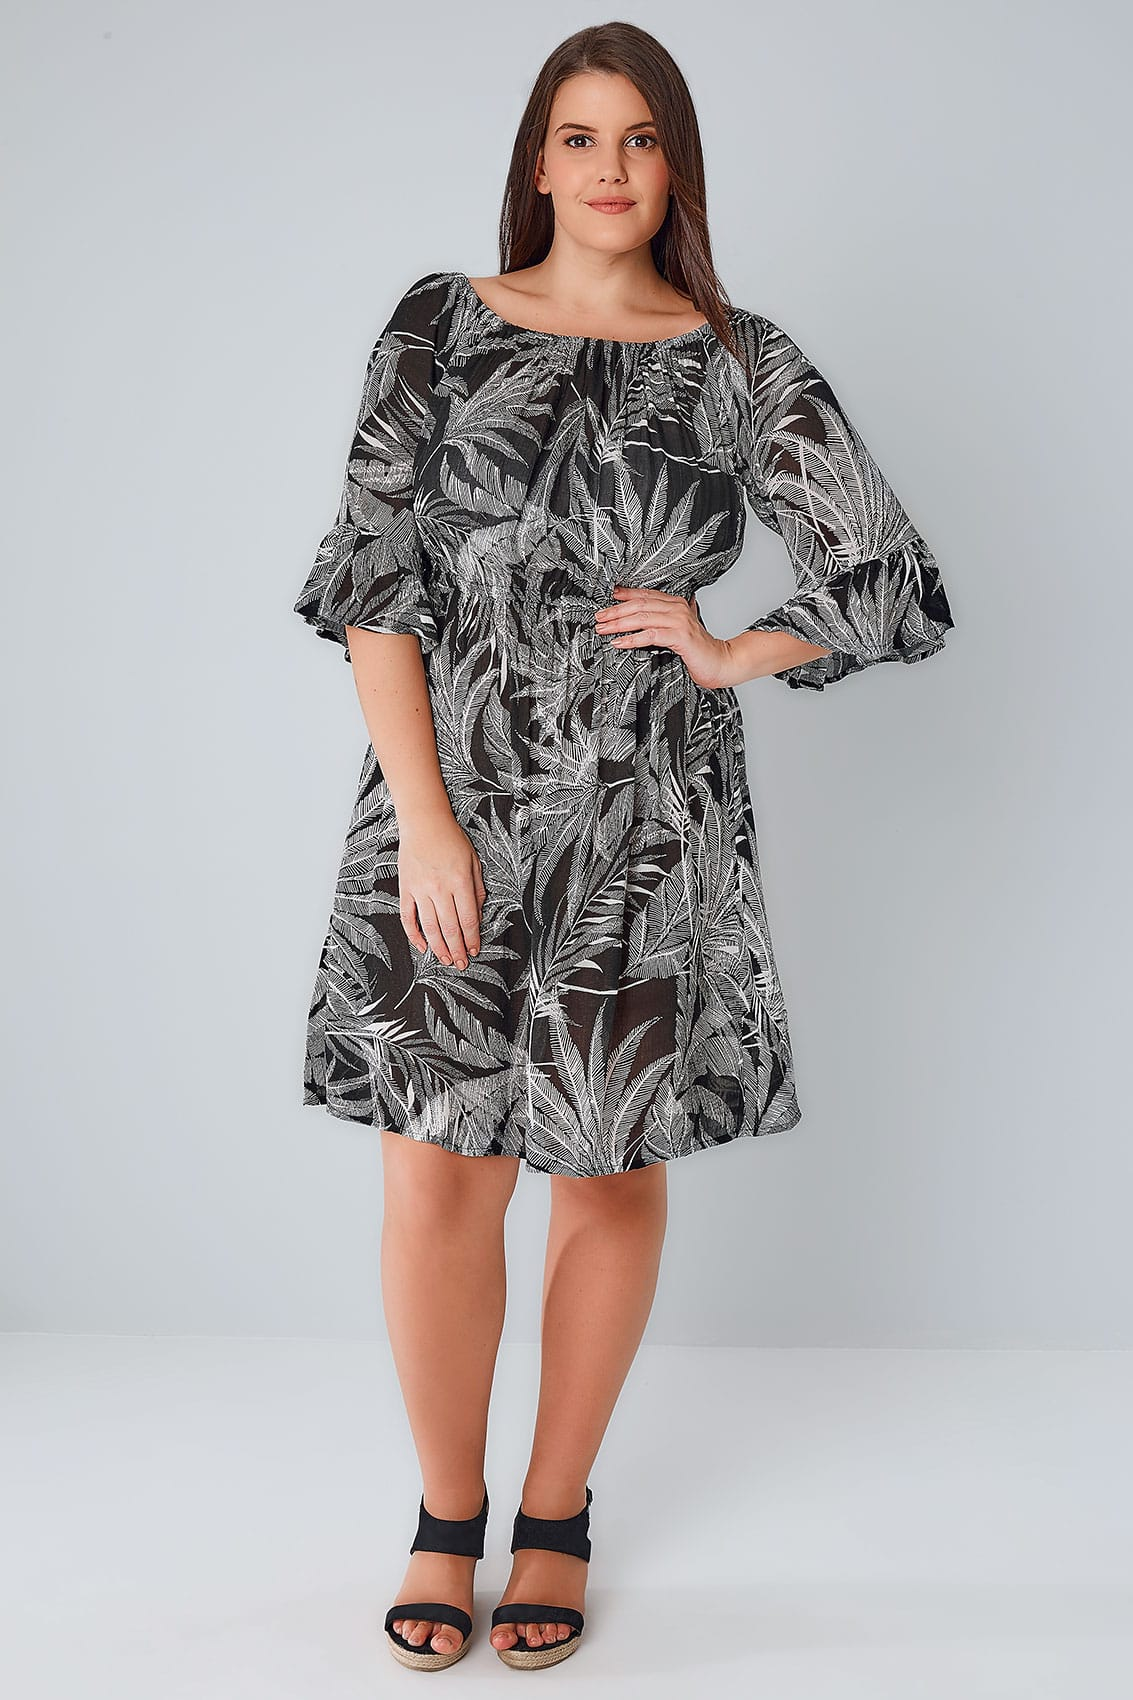 black  u0026 white palm print gypsy dress  plus size 16 to 36